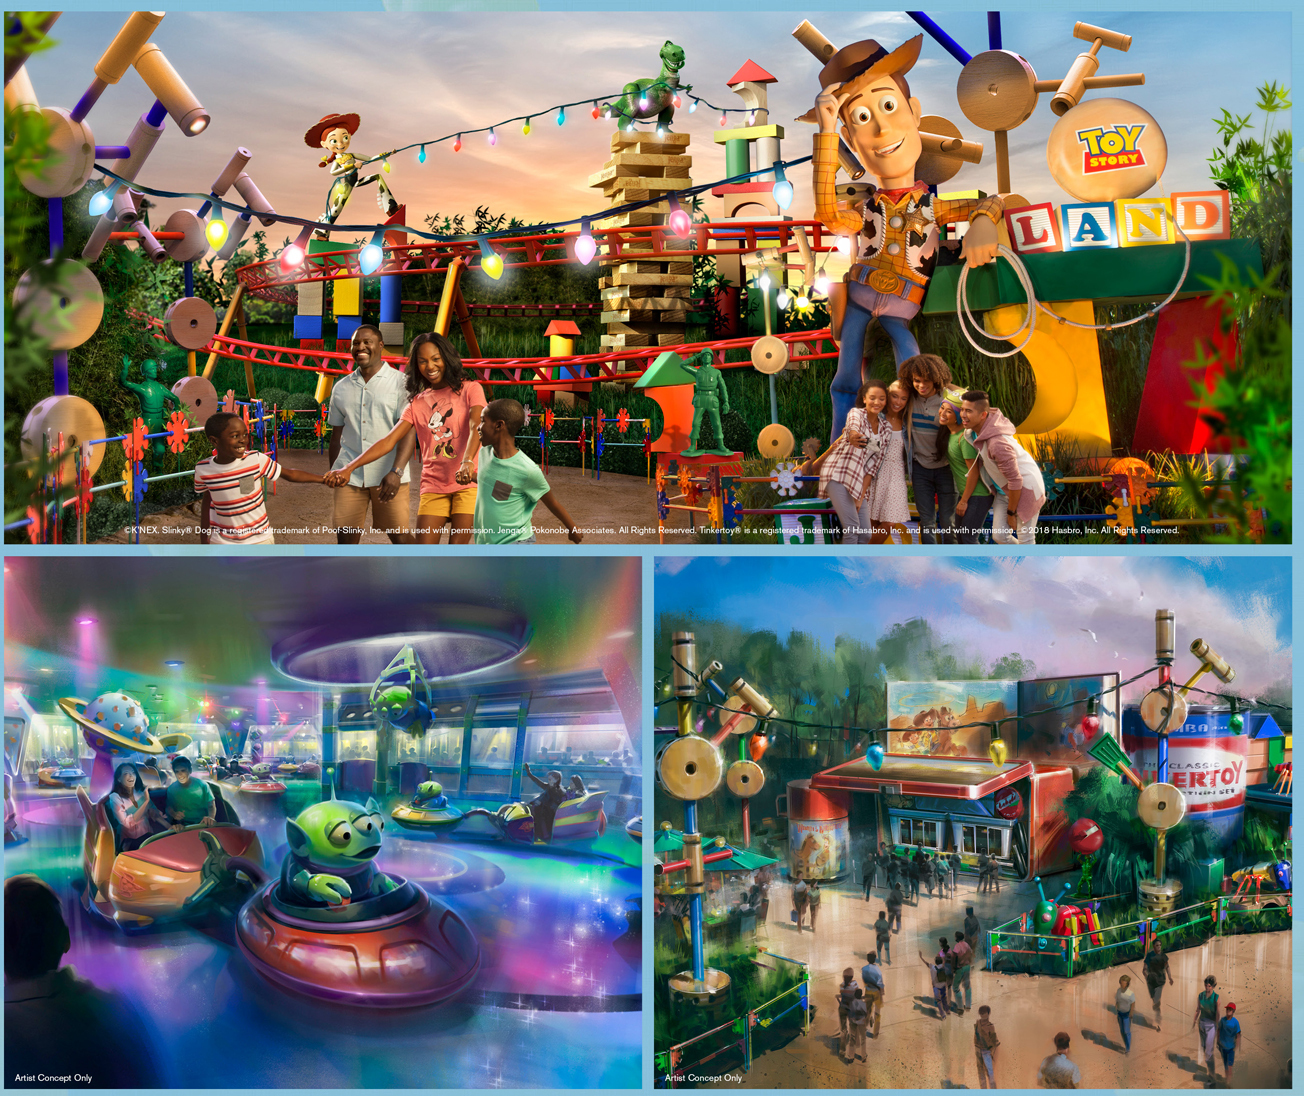 Win a 4 Night / 5 Day Walt Disney World Vacation in the Box Lunch Toy Story Land Giveaway!